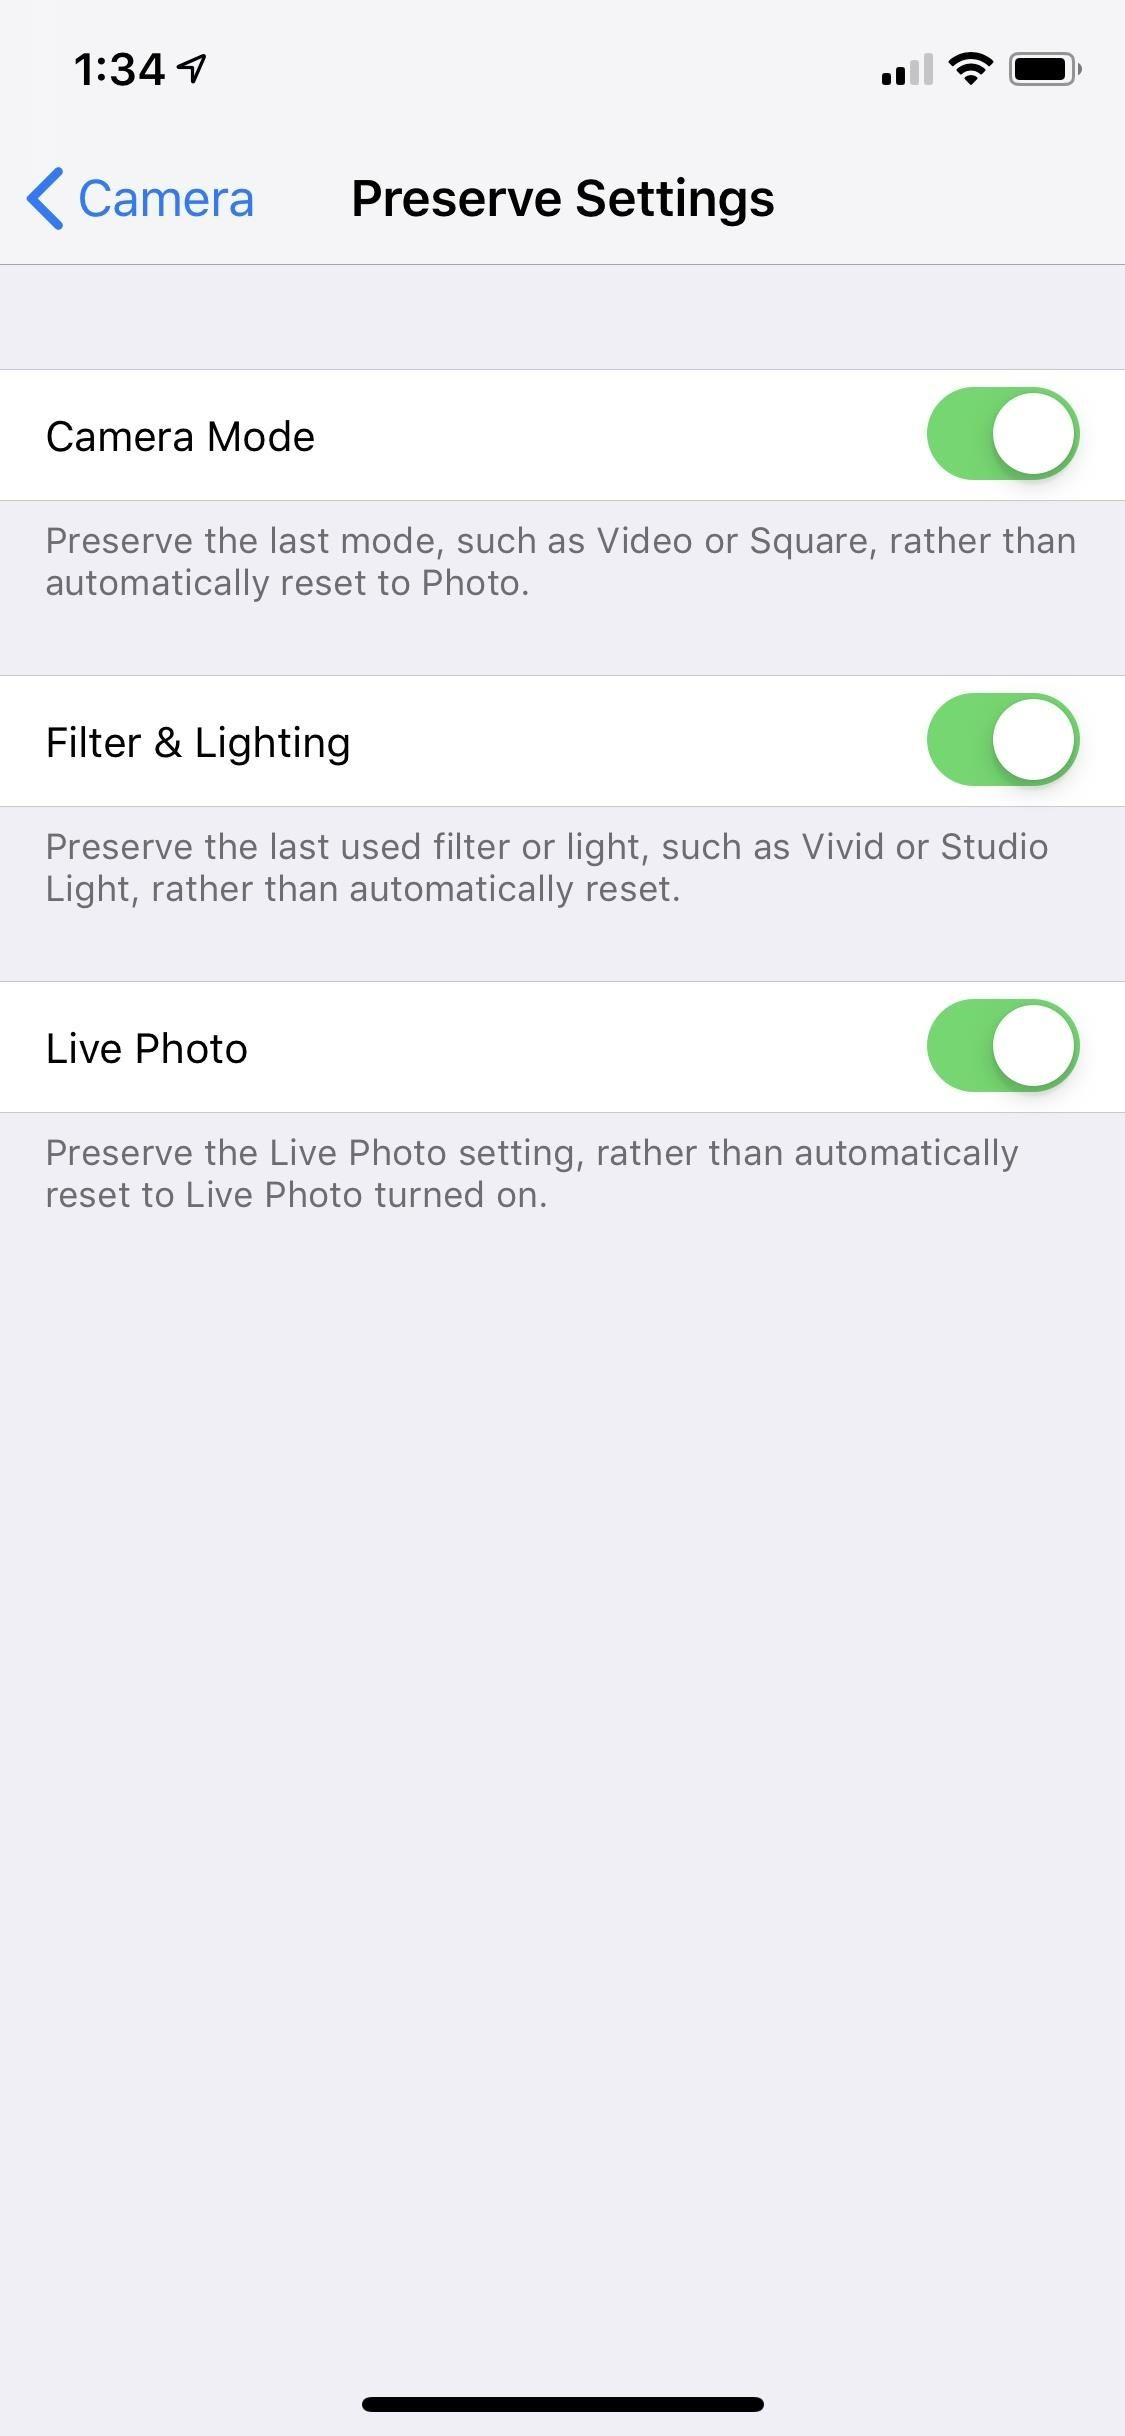 Make Your iPhone Camera Open to Your Last Used Shooting Settings So You're Always Ready